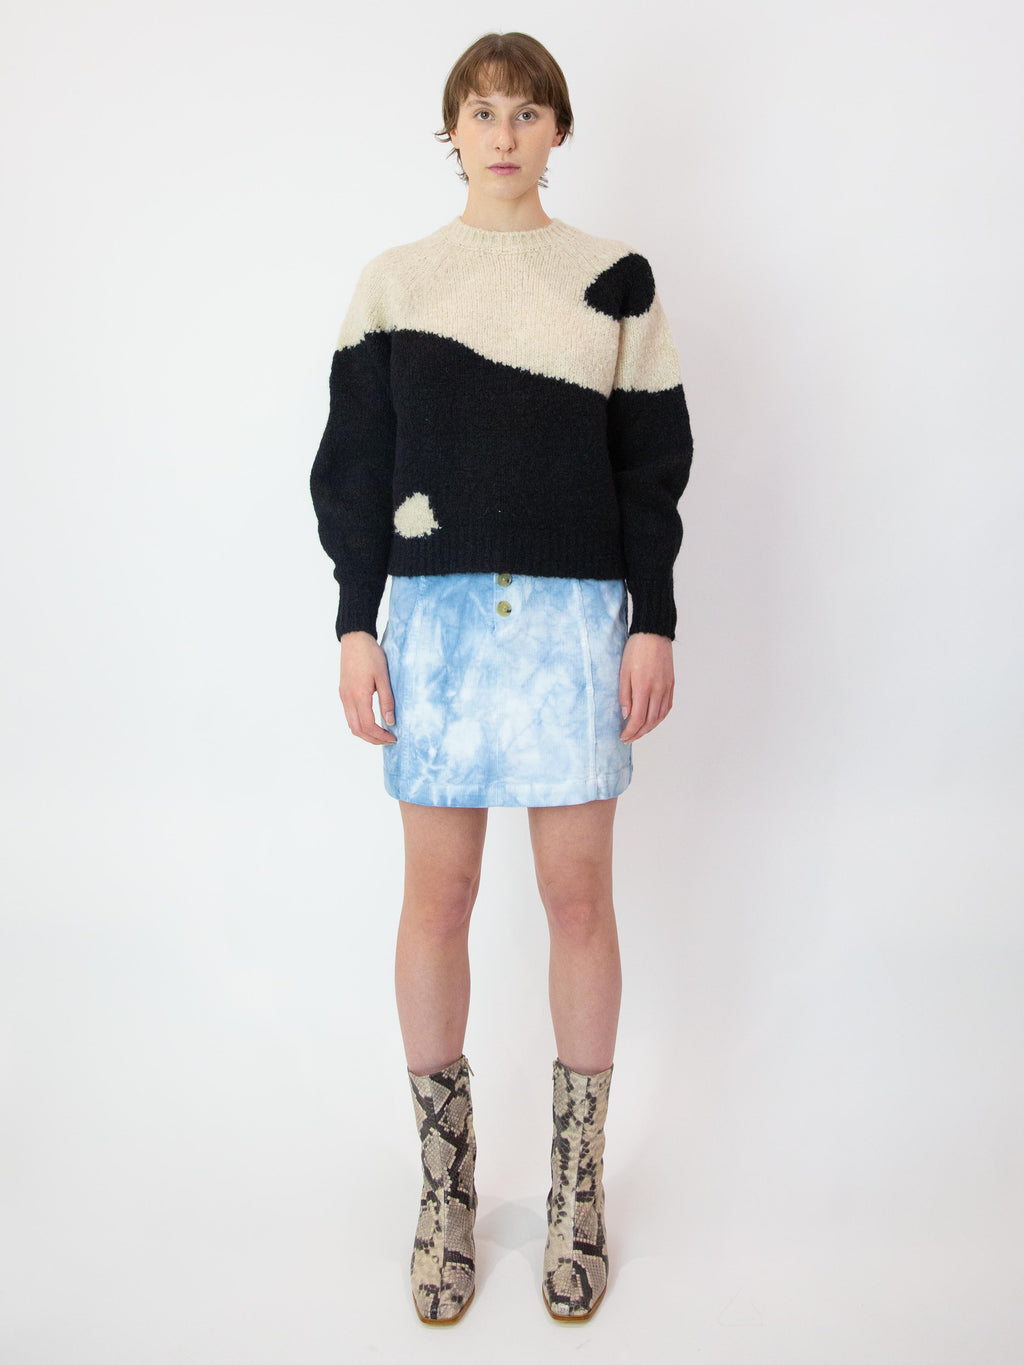 PALOMA WOOL Ying Yang Sweater - Black